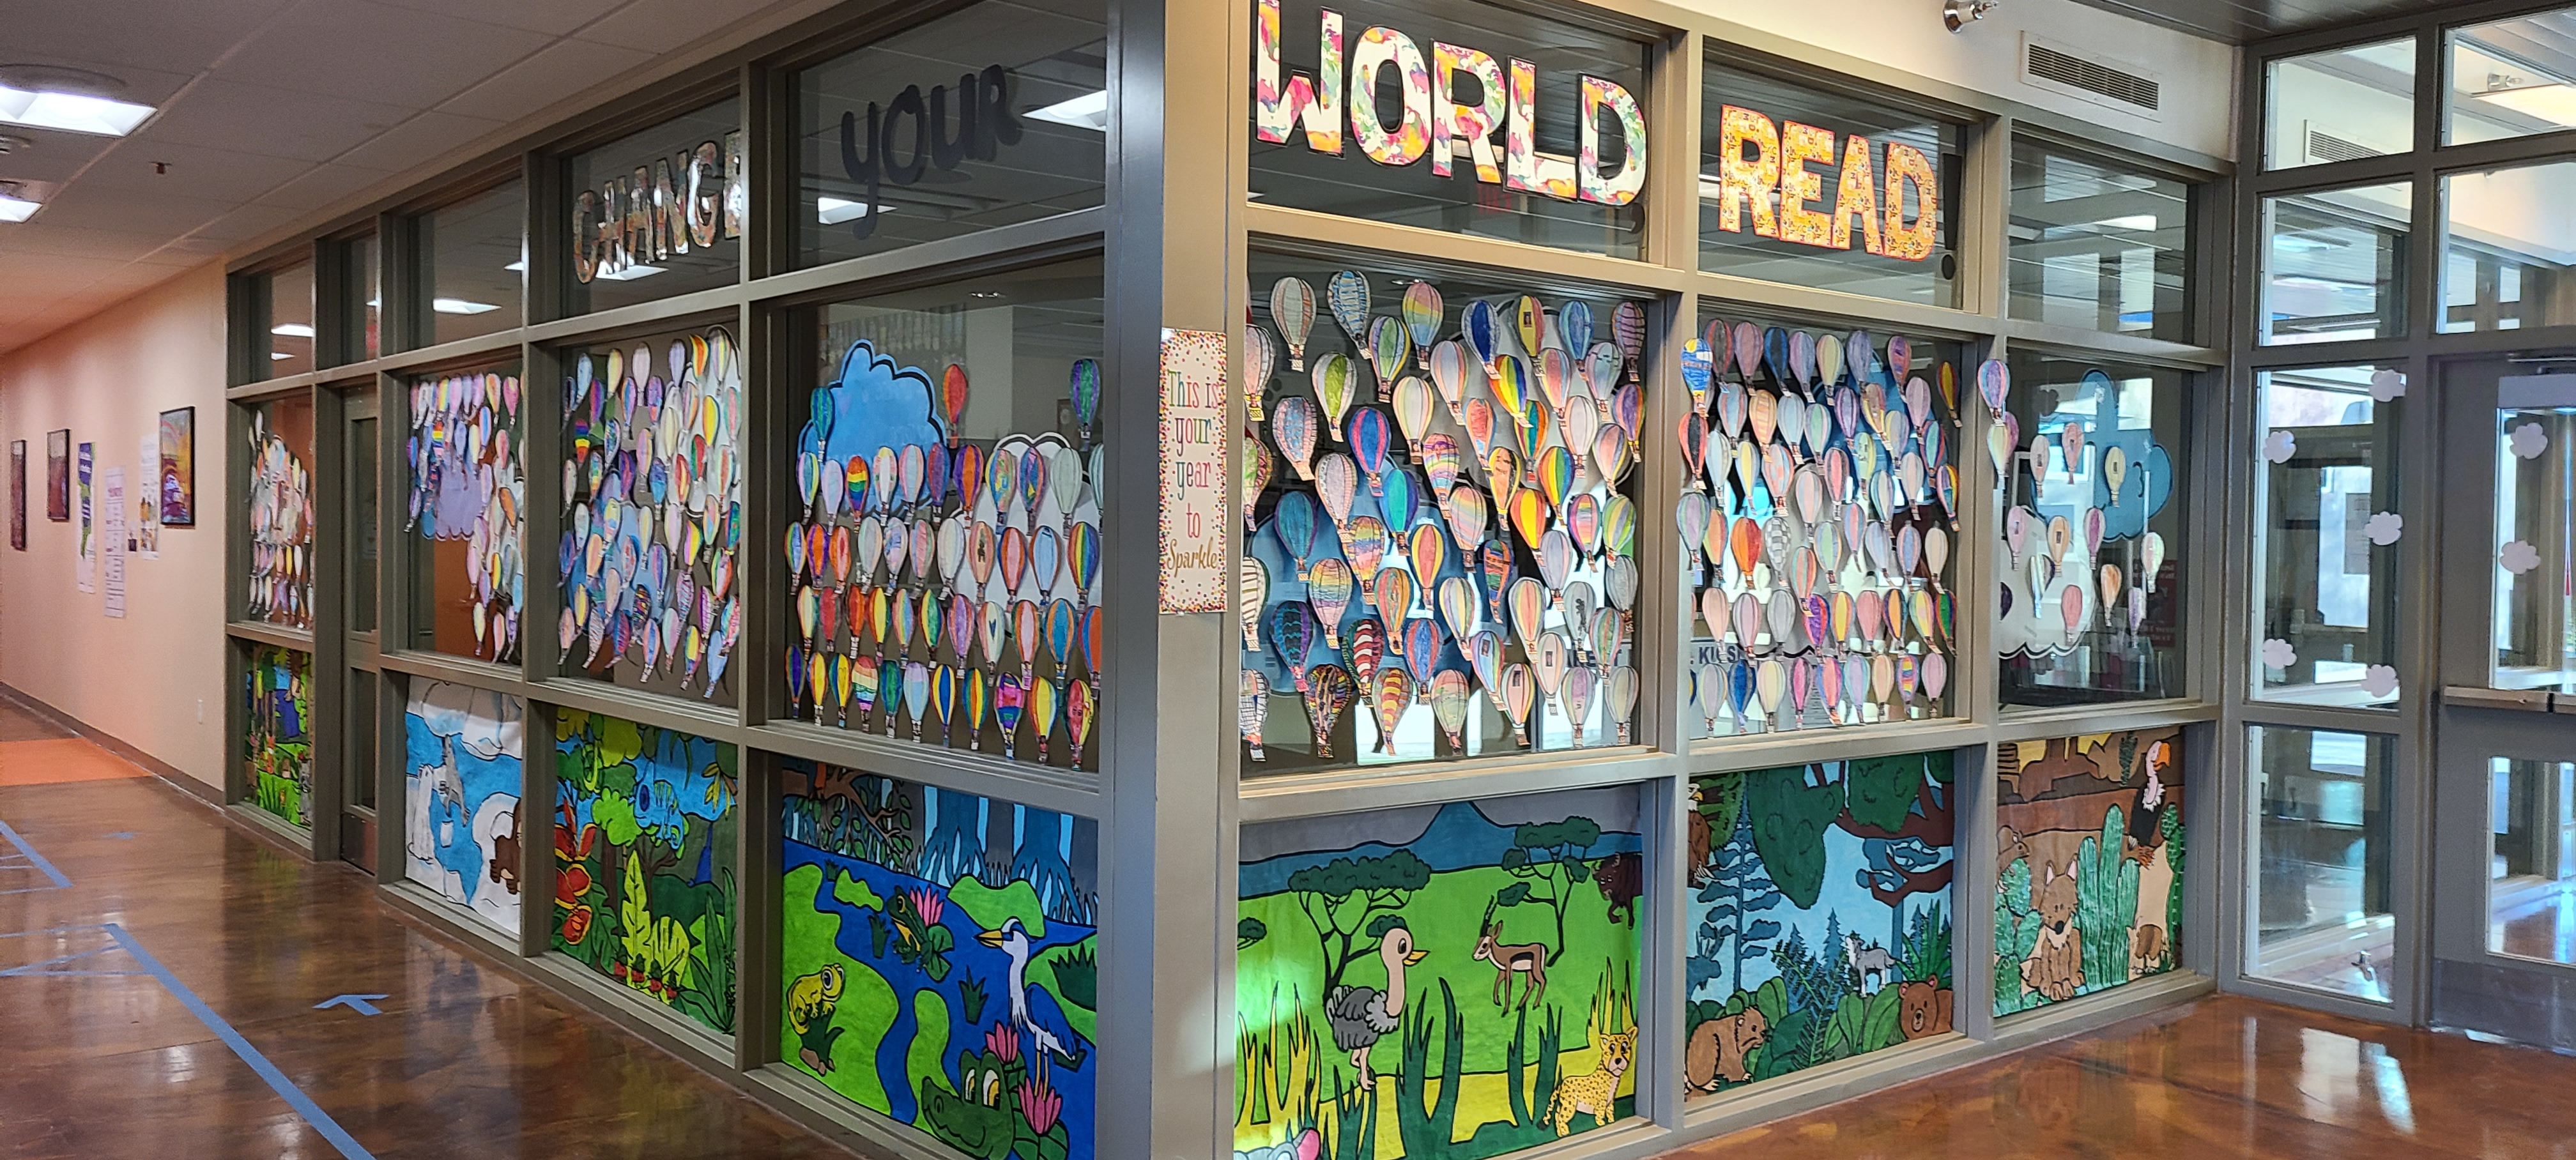 Reading Week! -- Change your world: Read!